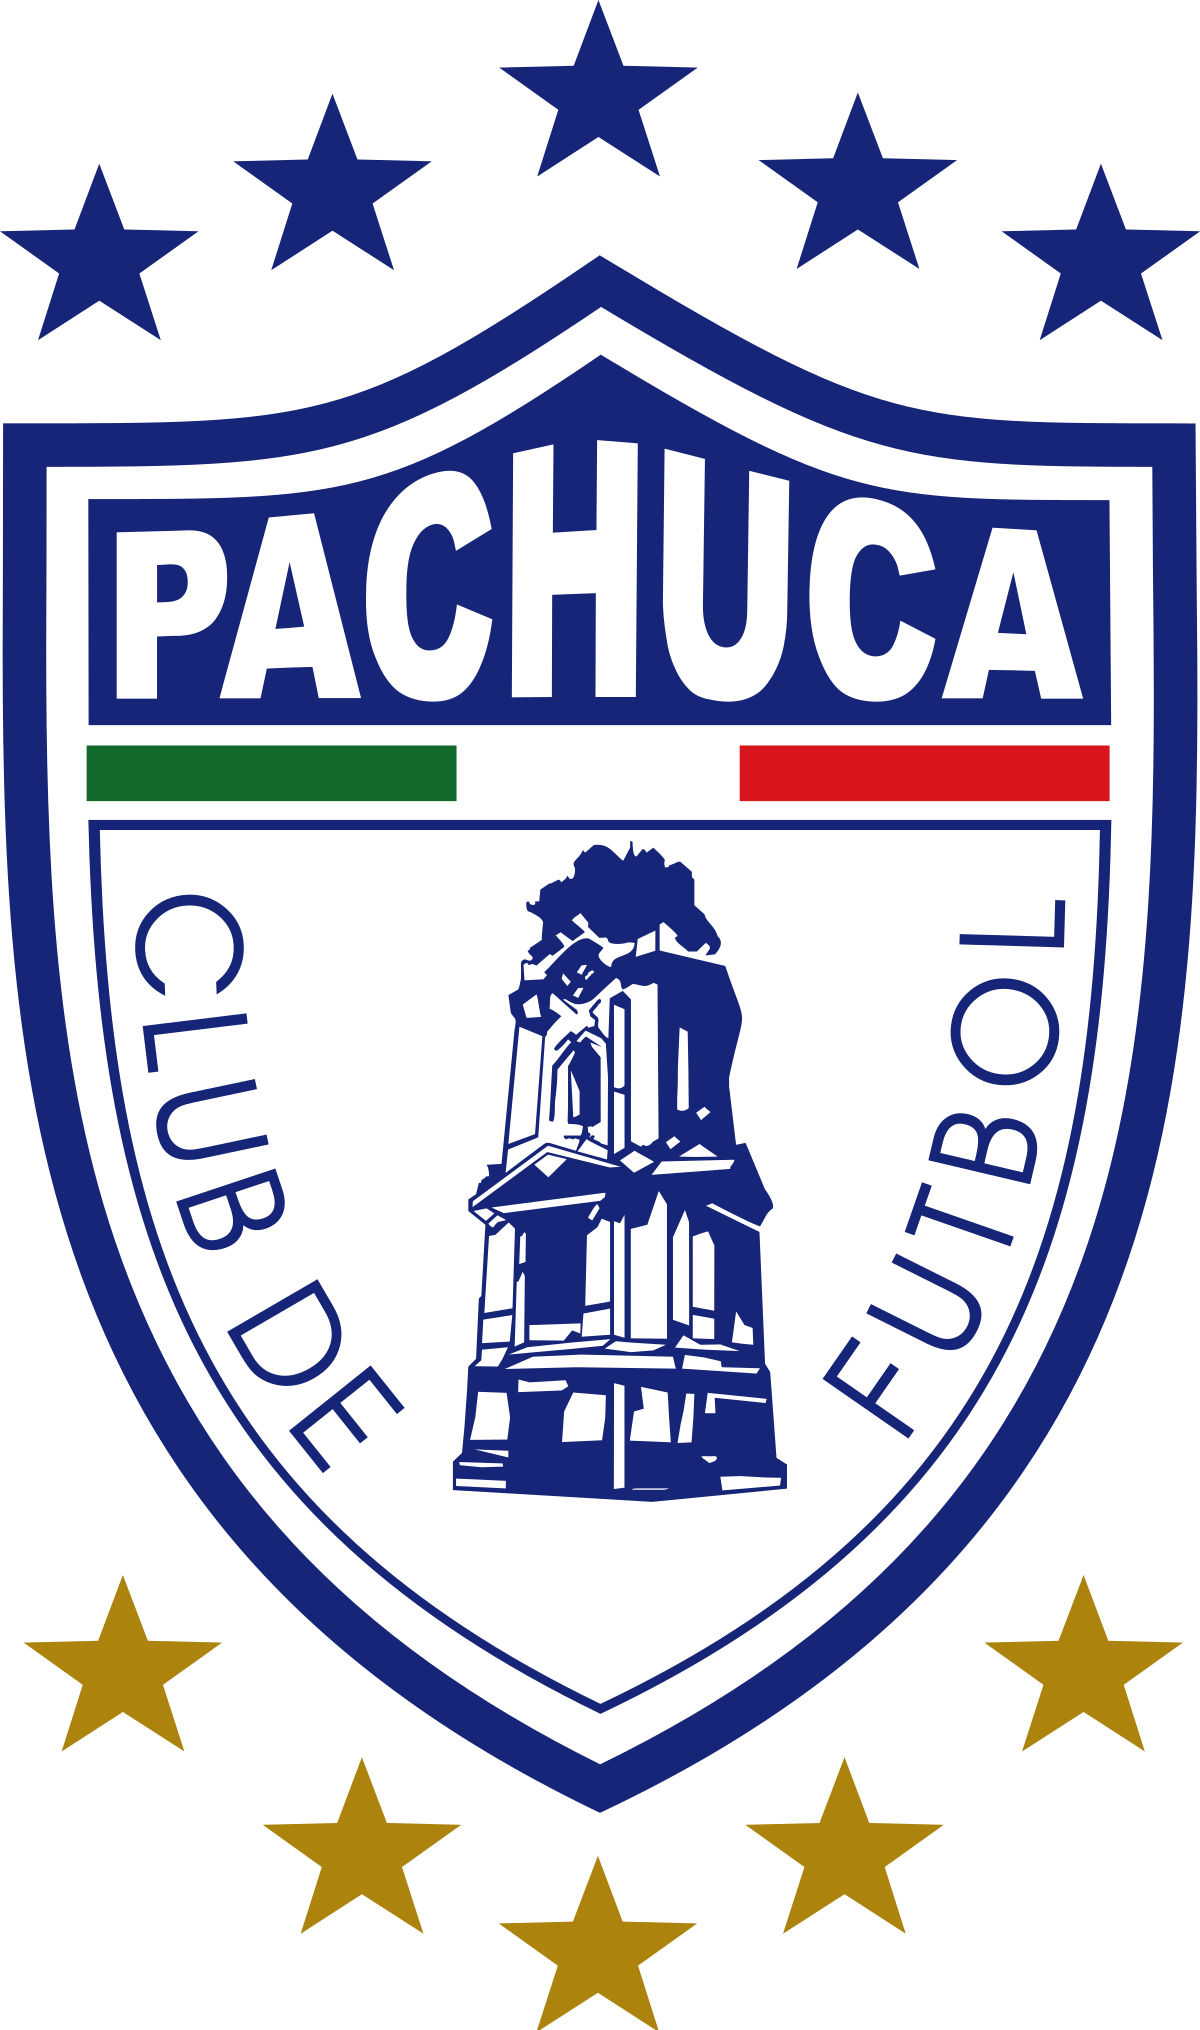 pachuca drawing lil